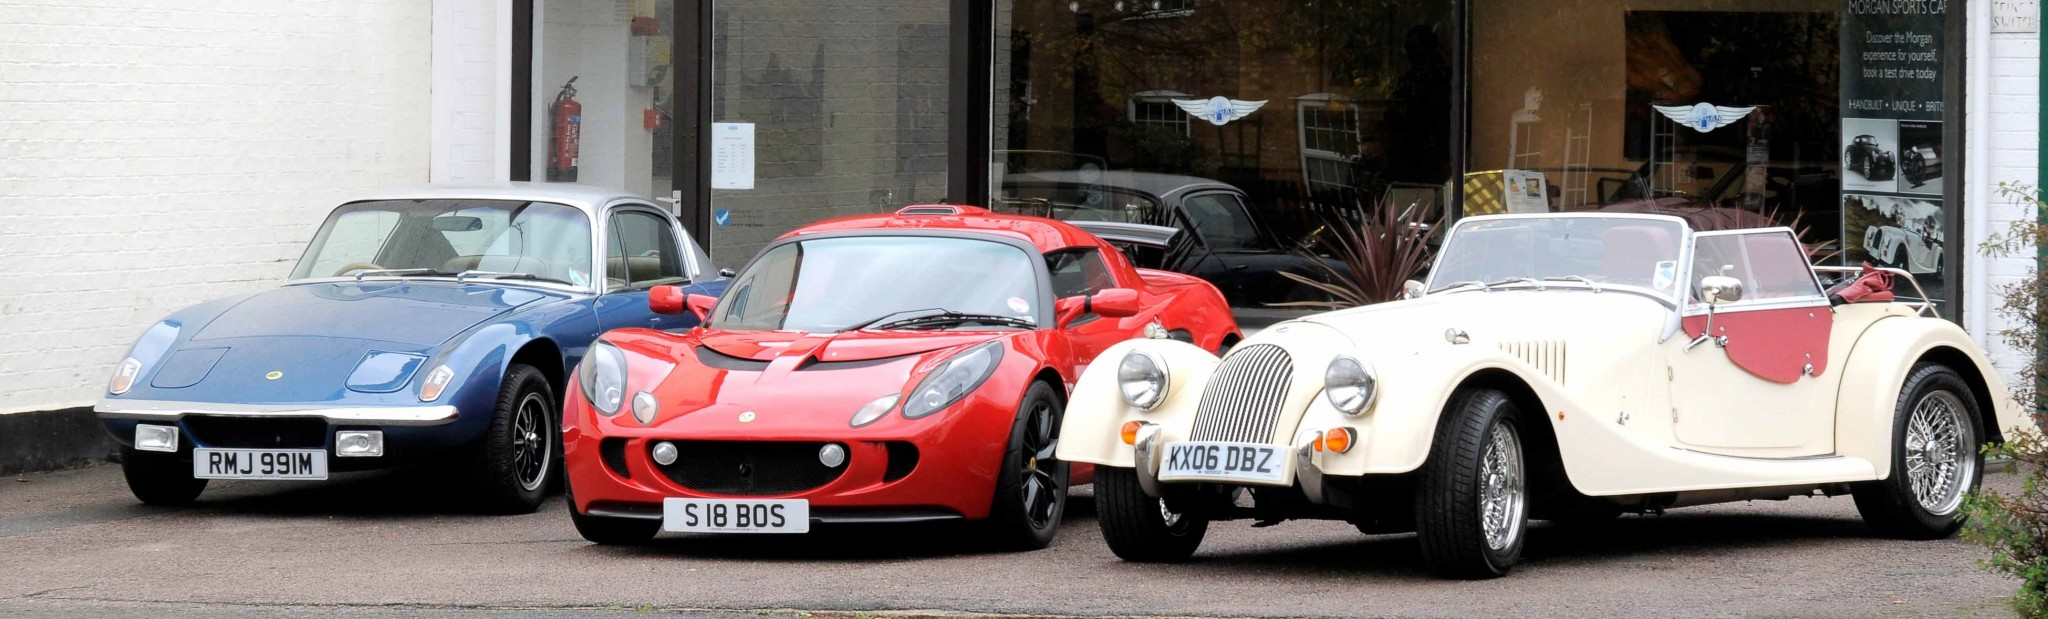 Allon White Sports Cars Lotus and Morgan